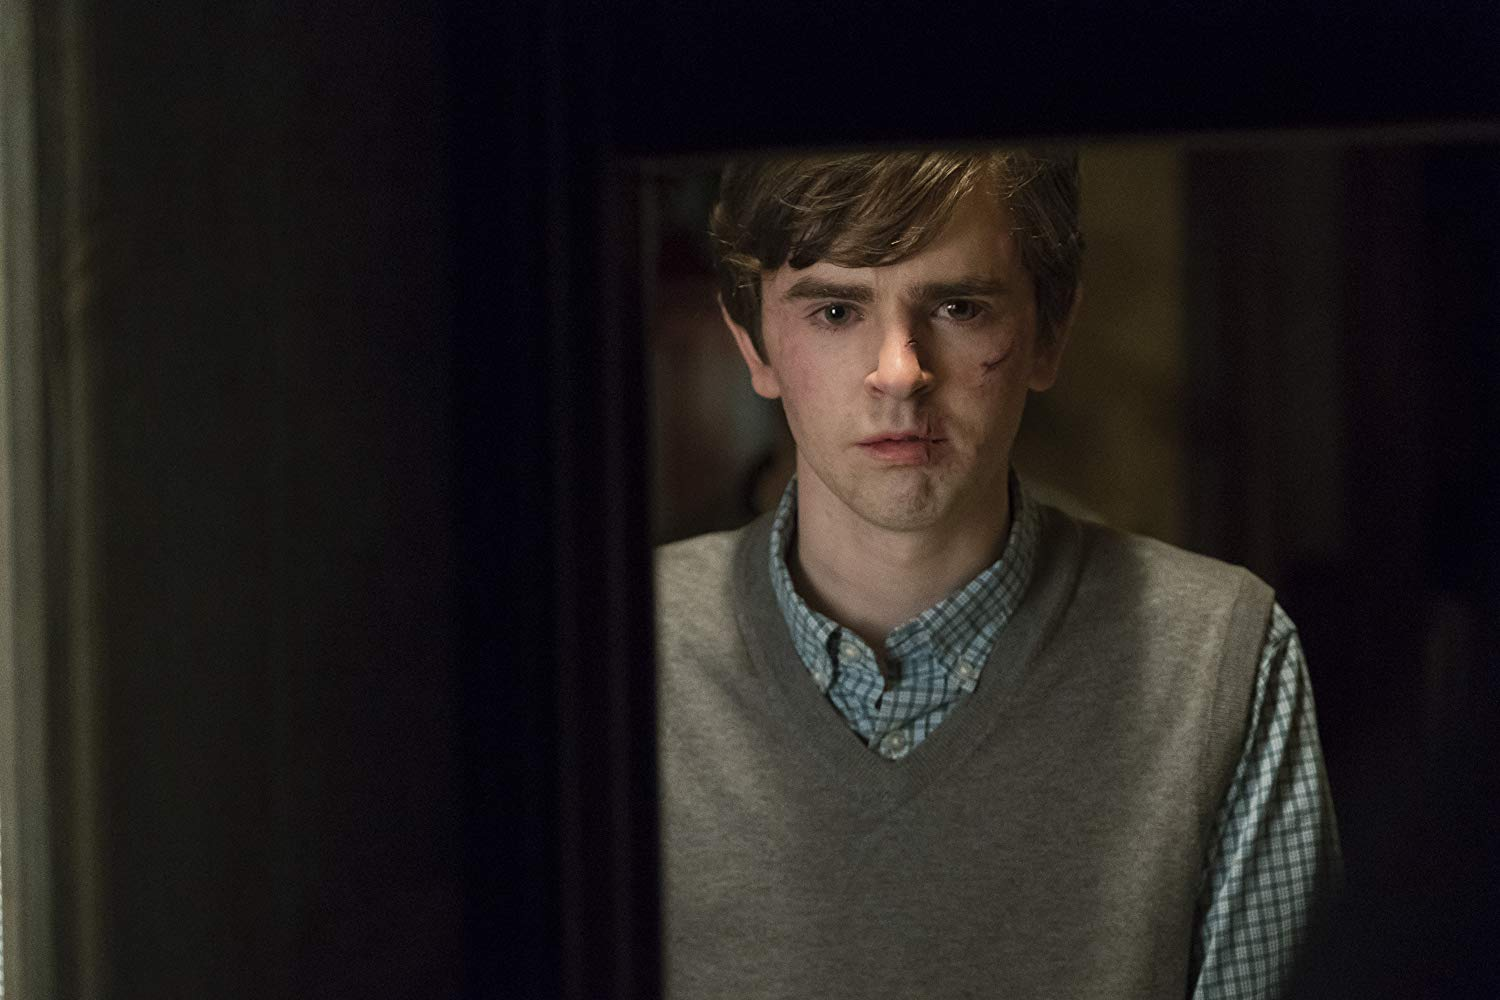 Bates Motel: The Cord